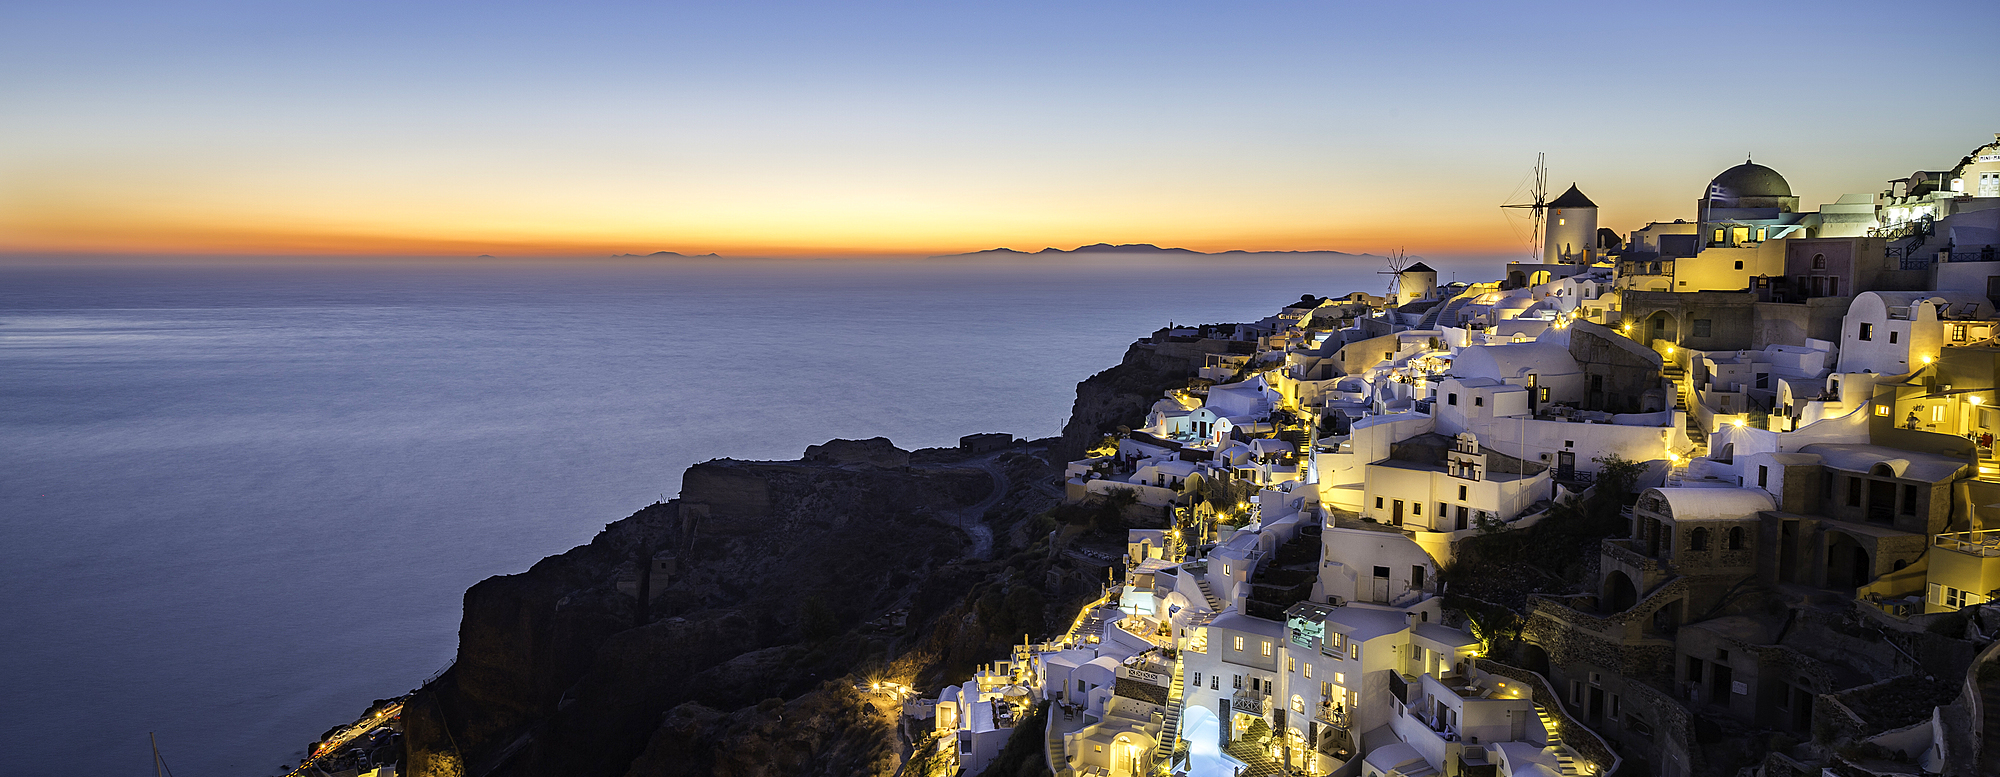 1263-41 ( Matt Parry ) - Long exposure sunset view over the whitewashed buildings and windmills of Oia, Santorini, Cyclades, Greek Islands, Greece, Europe